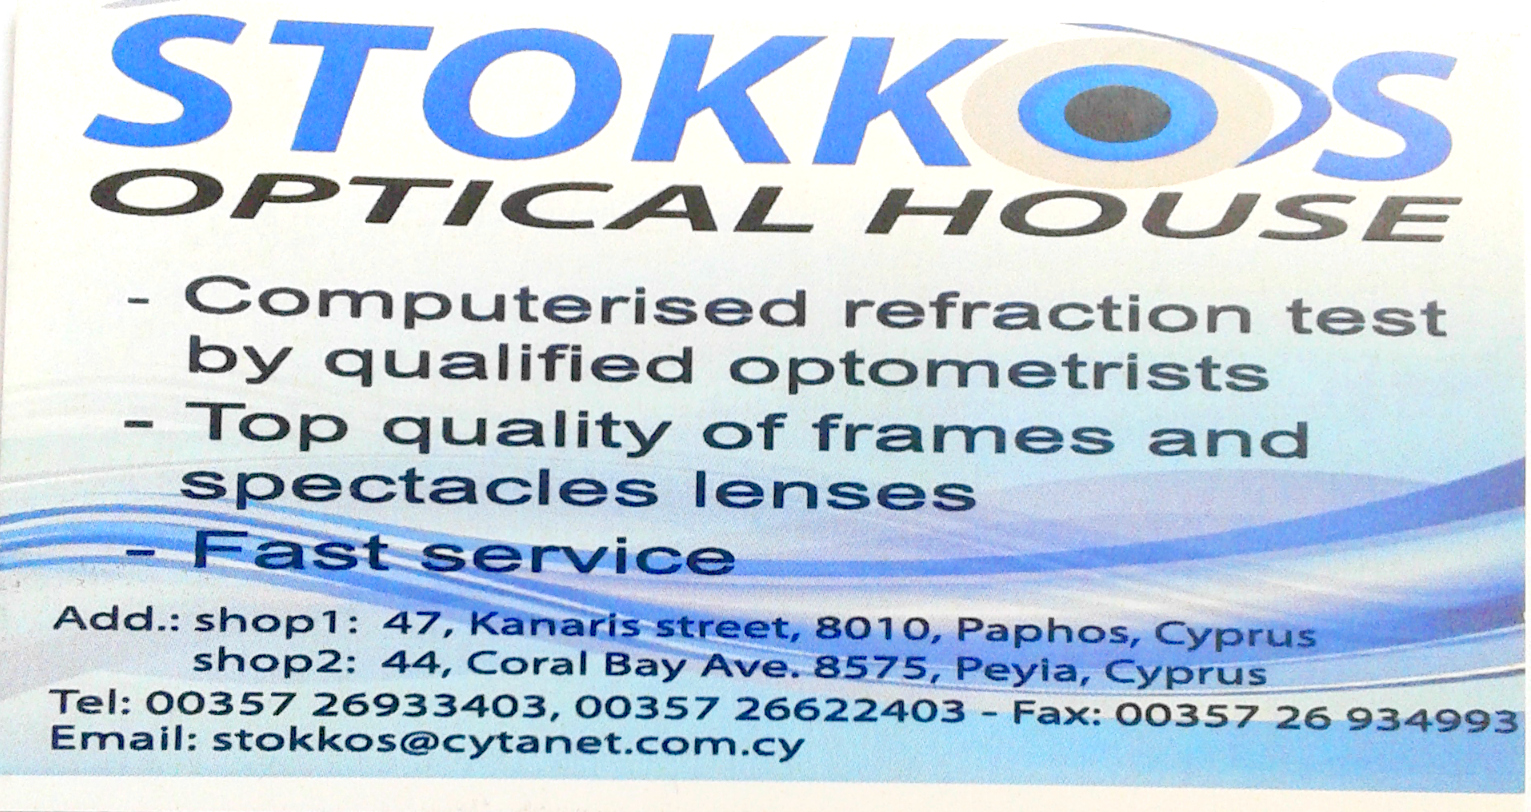 Stokkos Optical House